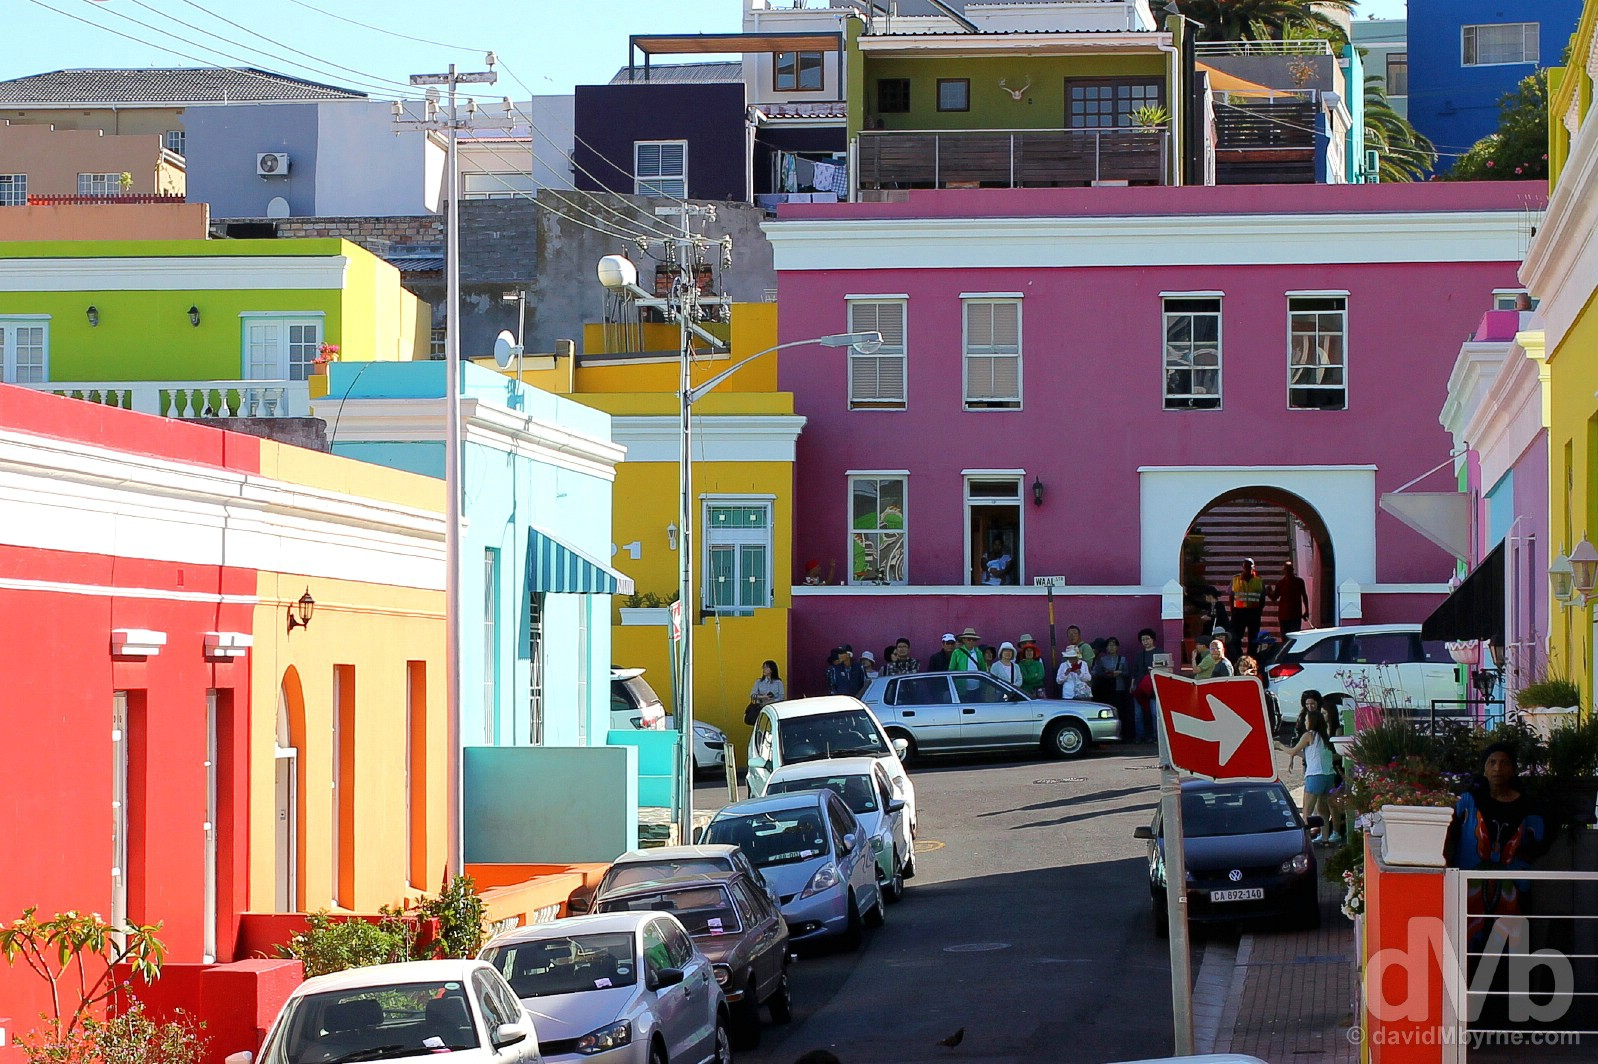 Bo-Kaap, Cape Town, Western Cape, South Africa. February 16, 2017.